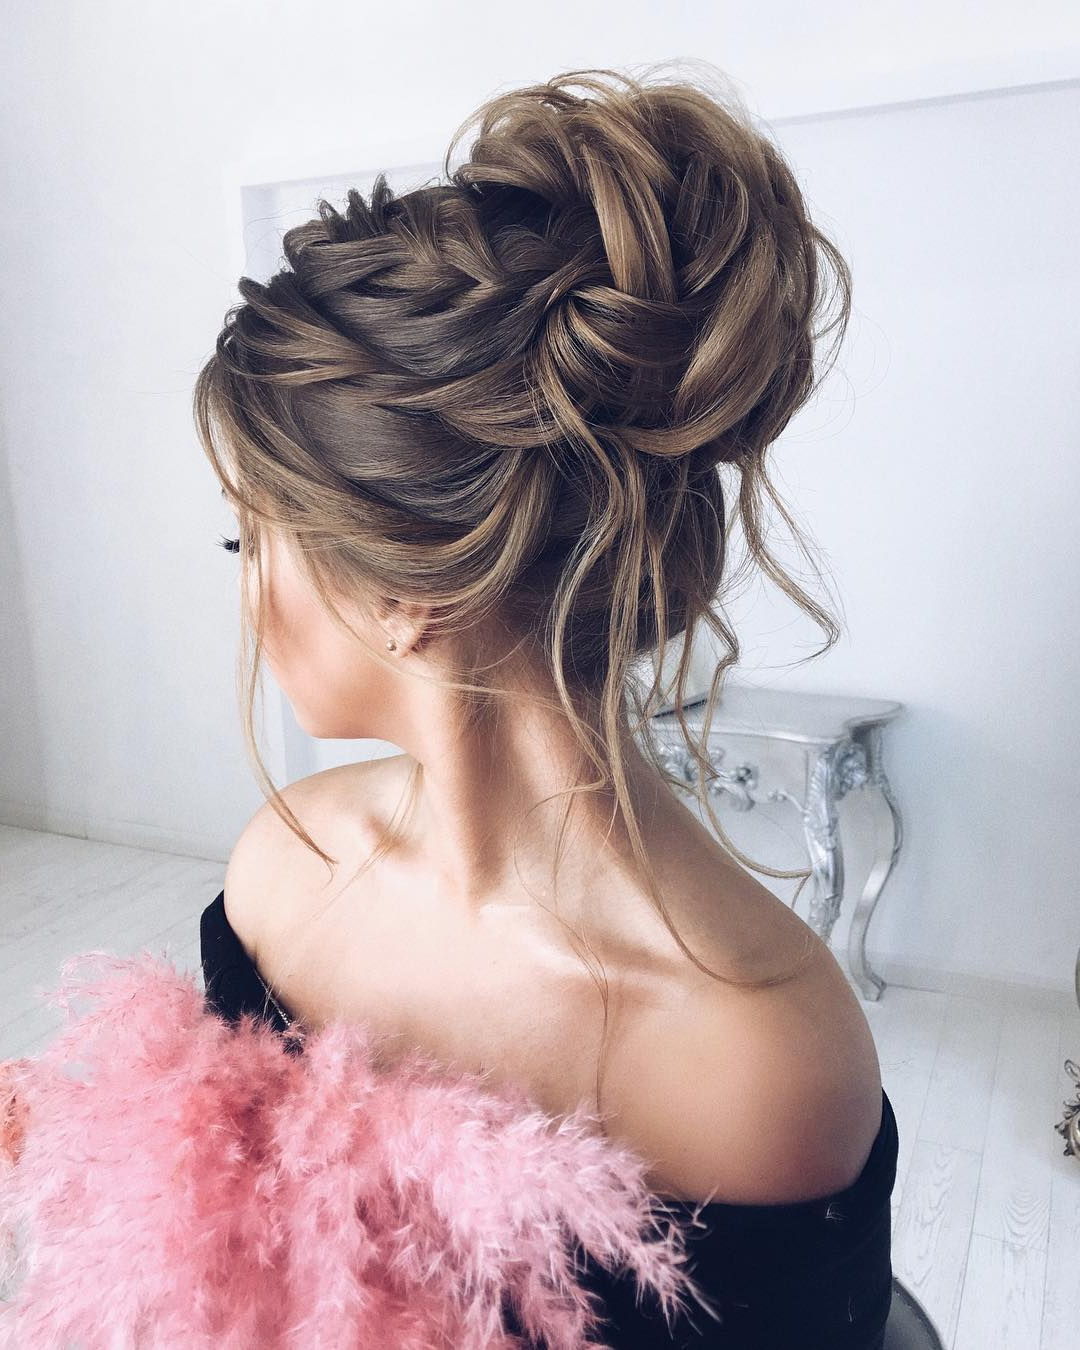 10 Gorgeous Prom Updos For Long Hair, Prom Updo Hairstyles 2019 With Famous Bun And Three Side Braids Prom Updos (Gallery 11 of 20)